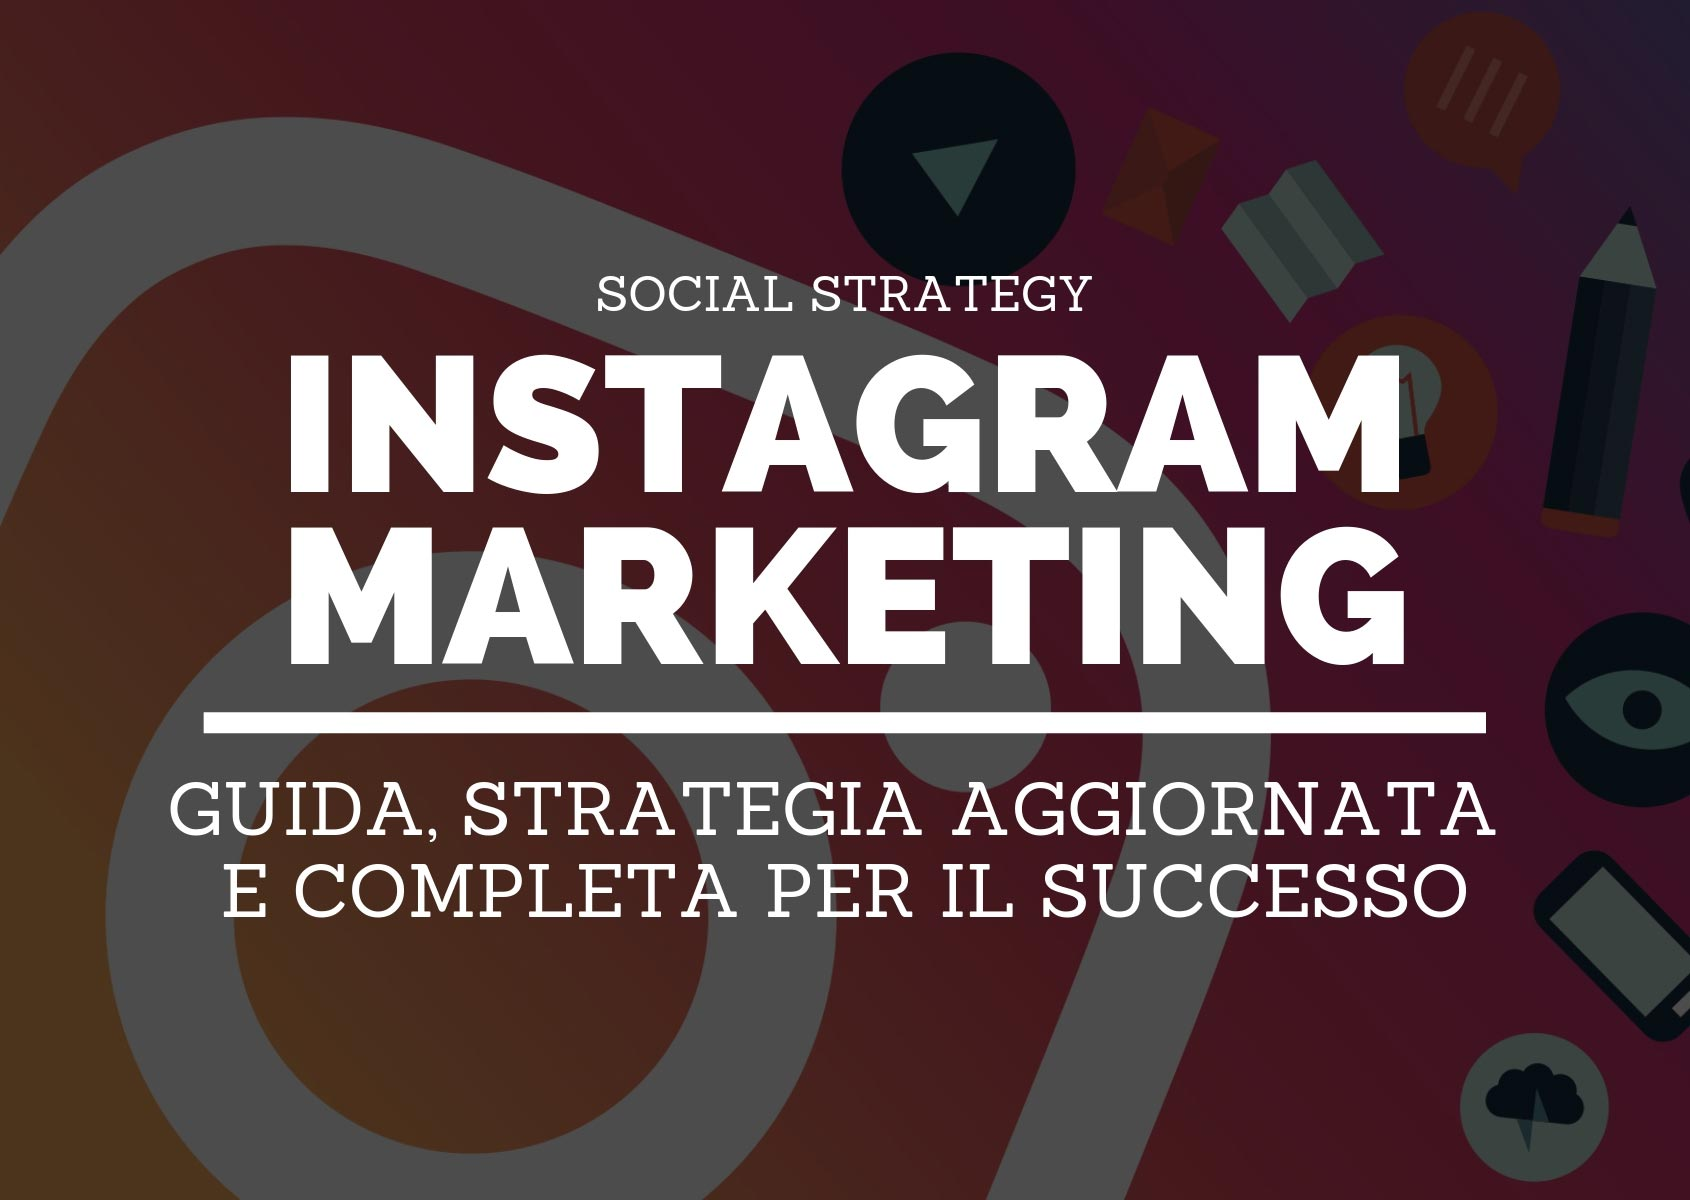 Cornici Storie Instagram Instagram Marketing Guida E Strategia Completa Per Il Successo